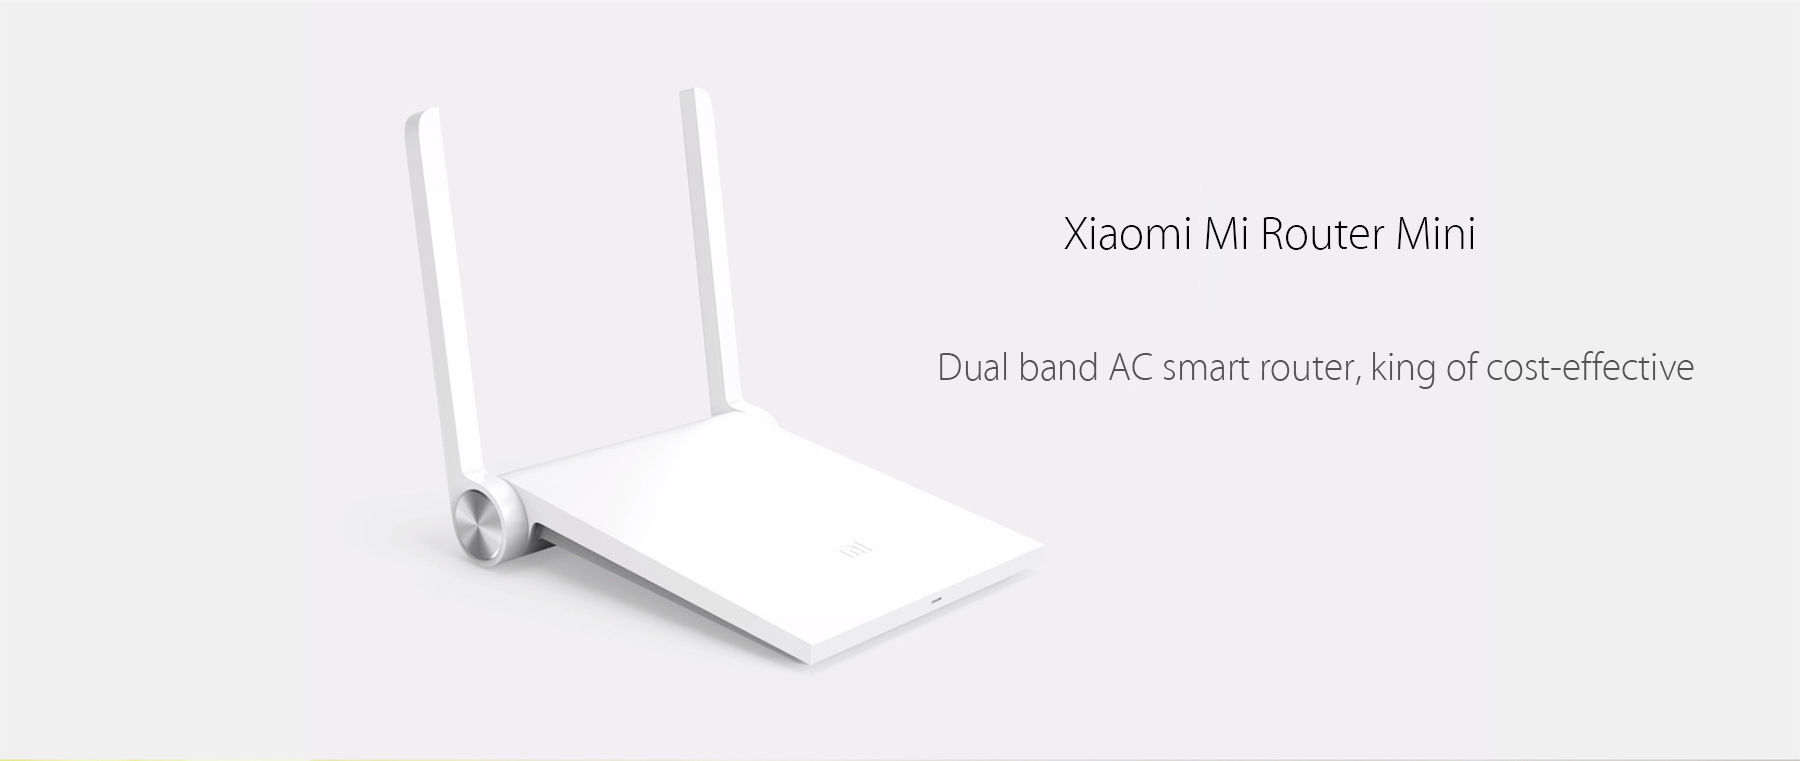 Xiaomi Mi Wifi Mini Router 80211n End 5 16 2019 1103 Am Chinese Version Dual Band 24ghz 5ghz 1167mbps Ac Intelligent